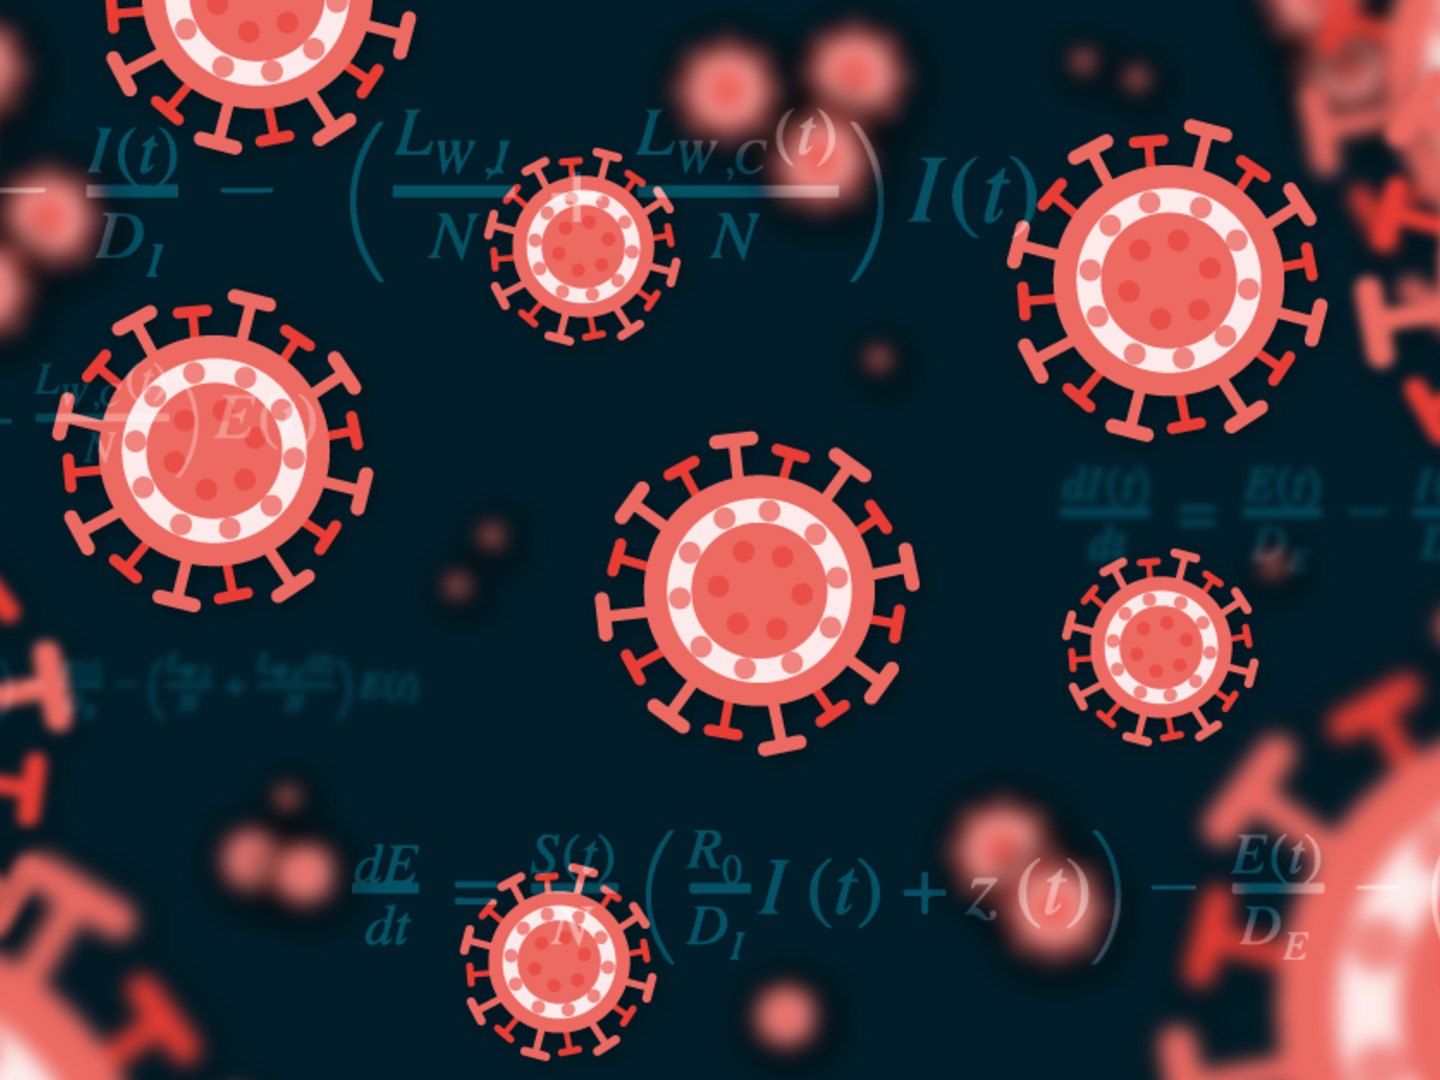 Viruses and mathematical models